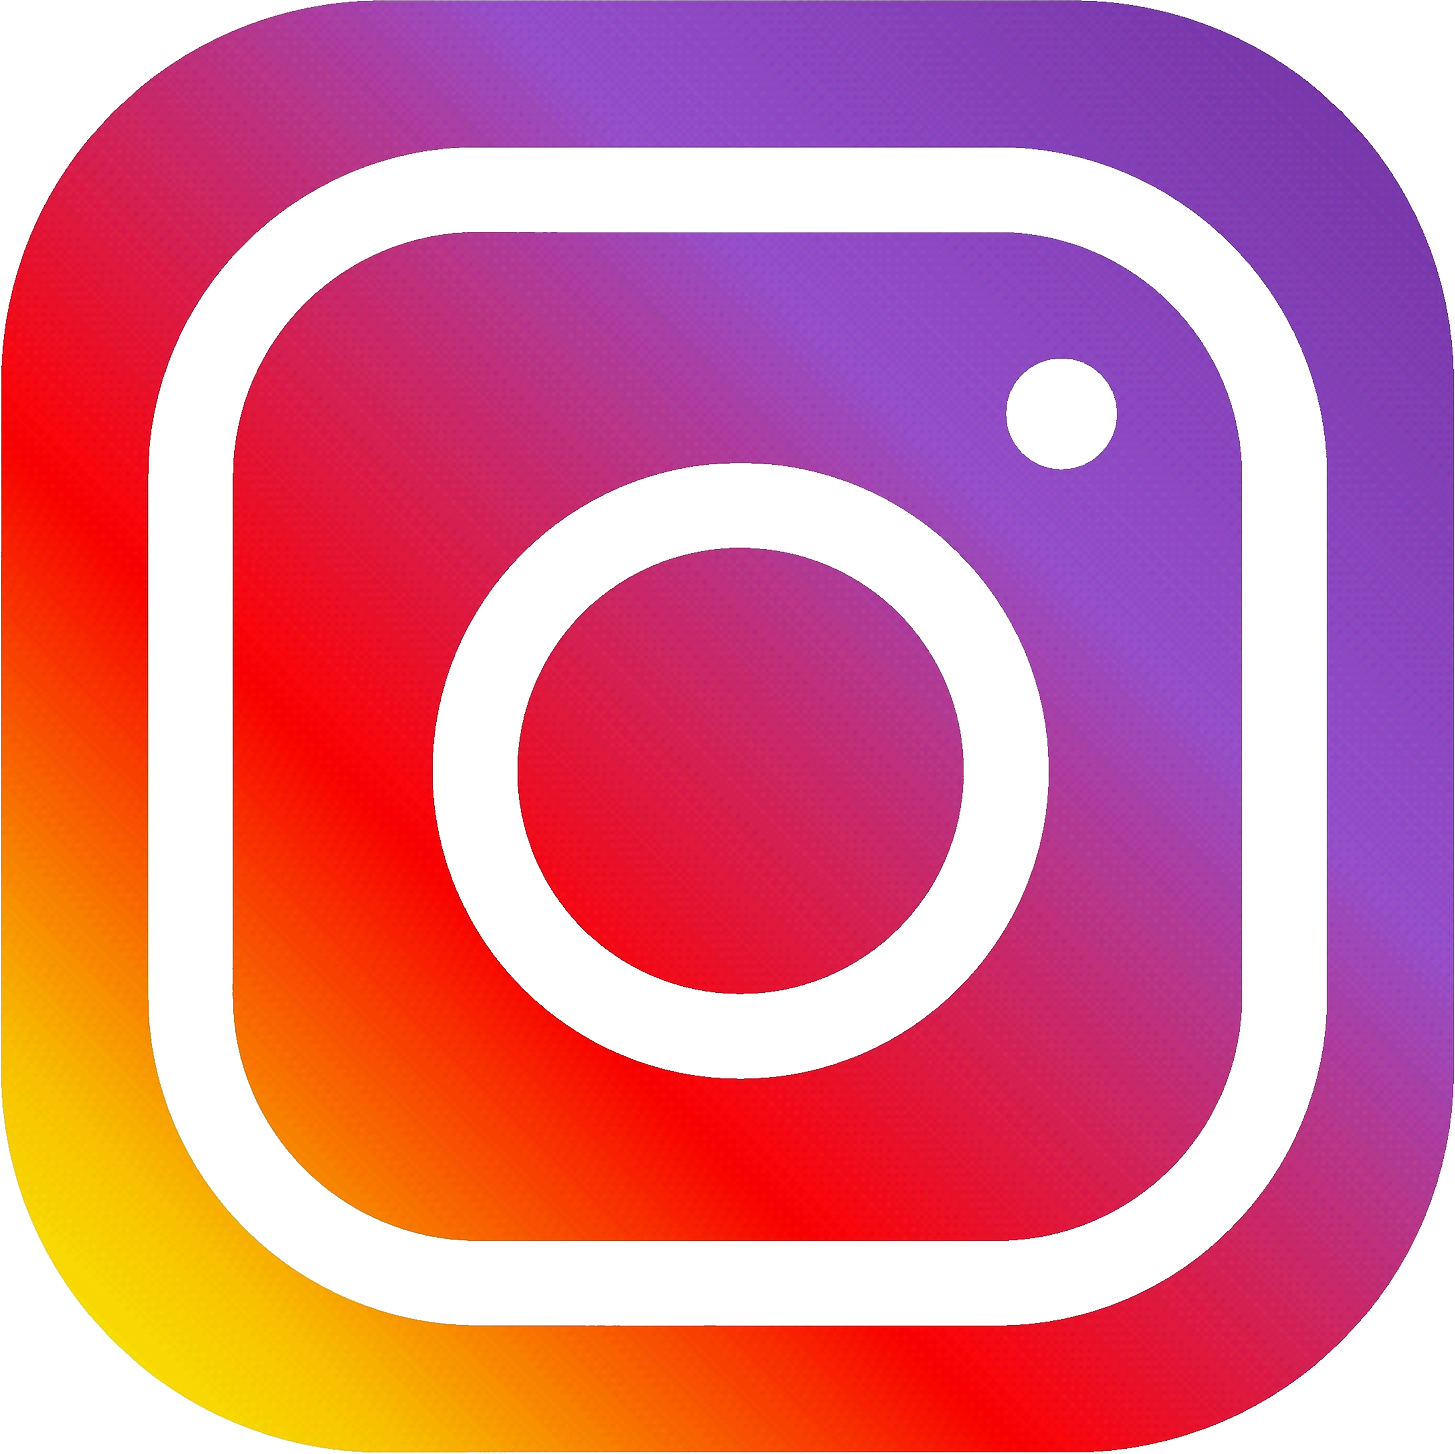 Our Instagram Link